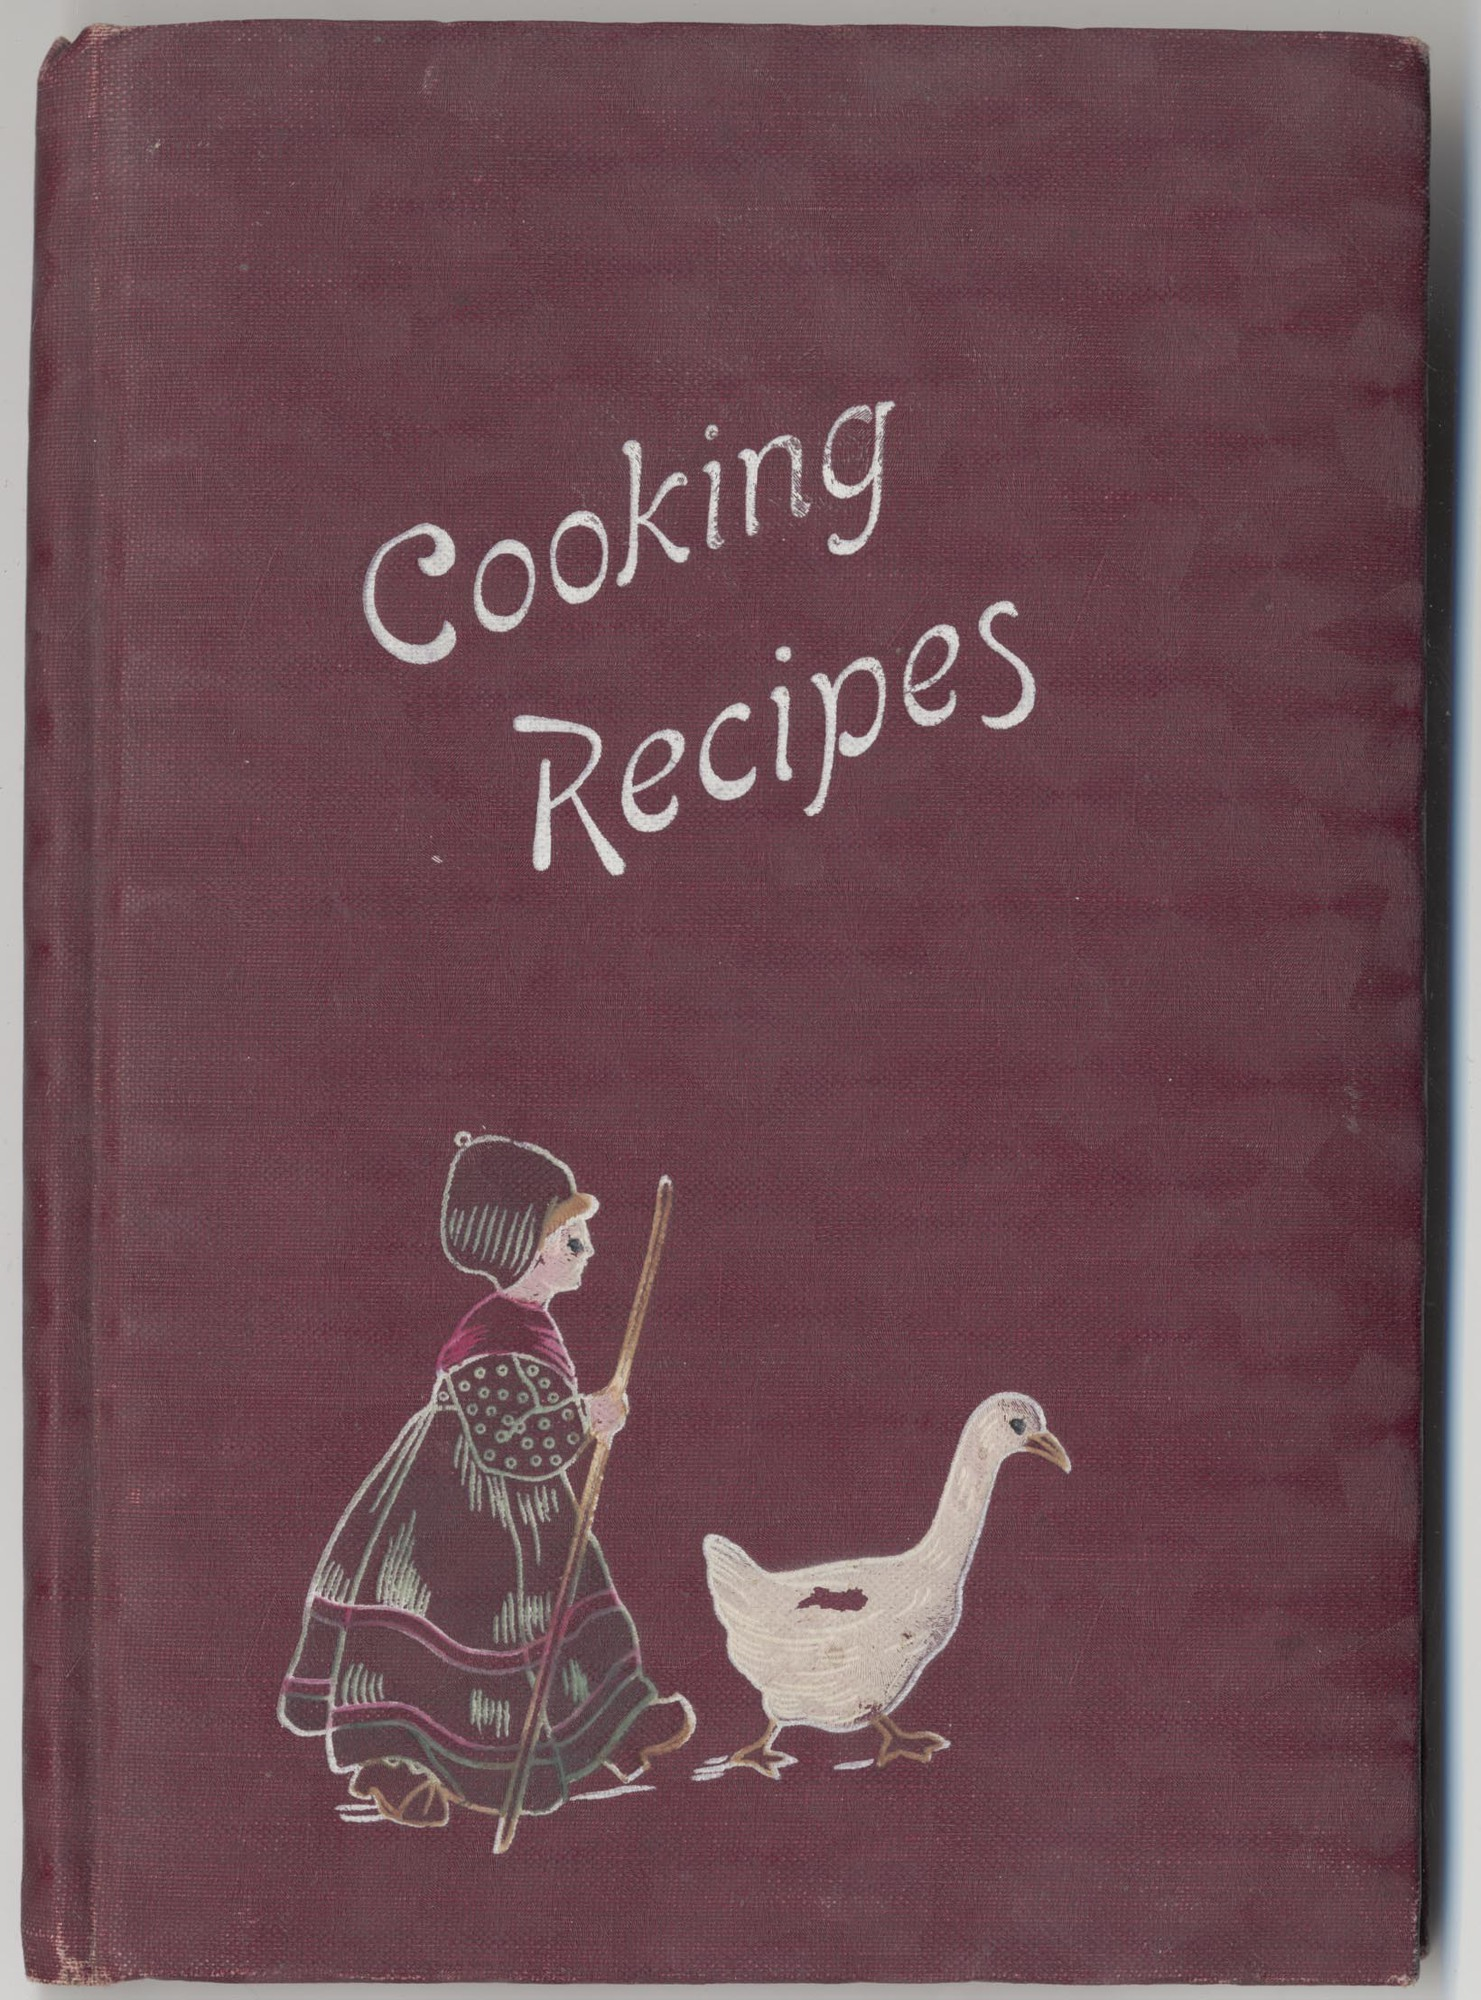 Ms2008_023_CookingRecipes_001.jpg